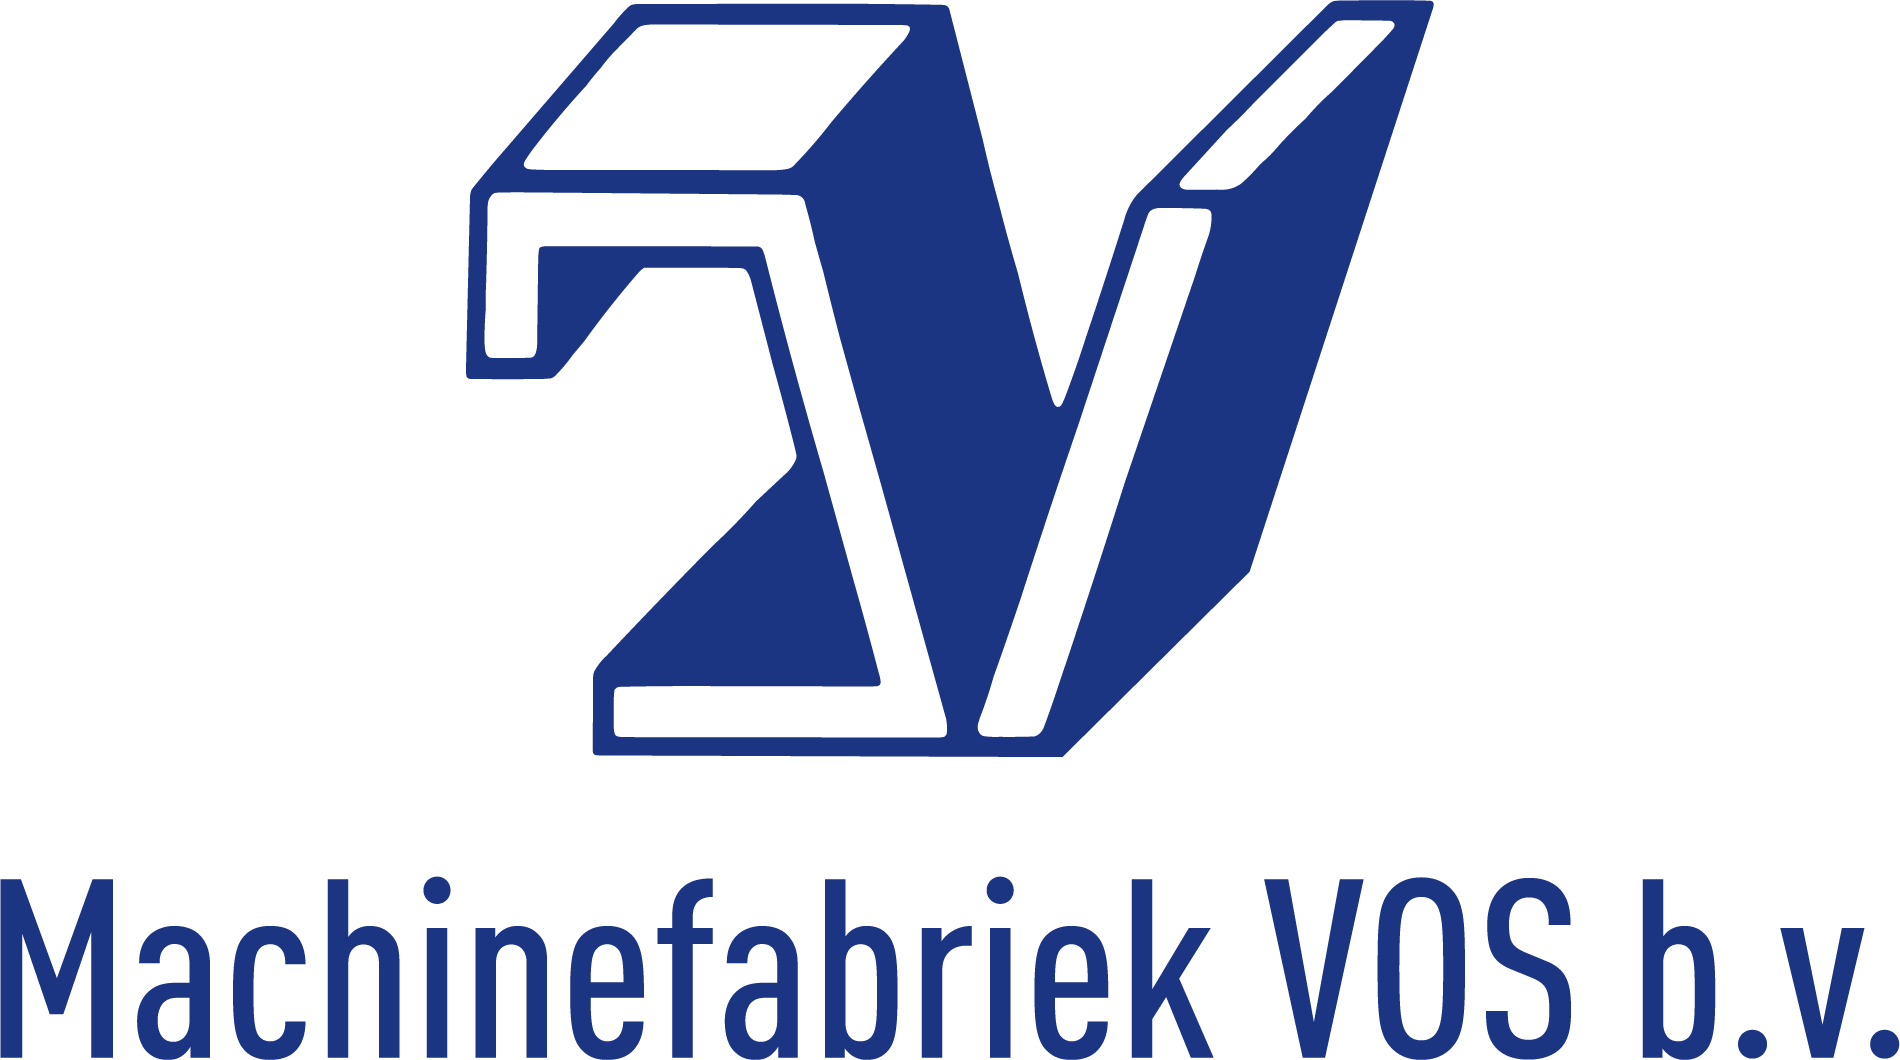 Machinefabriek Vos